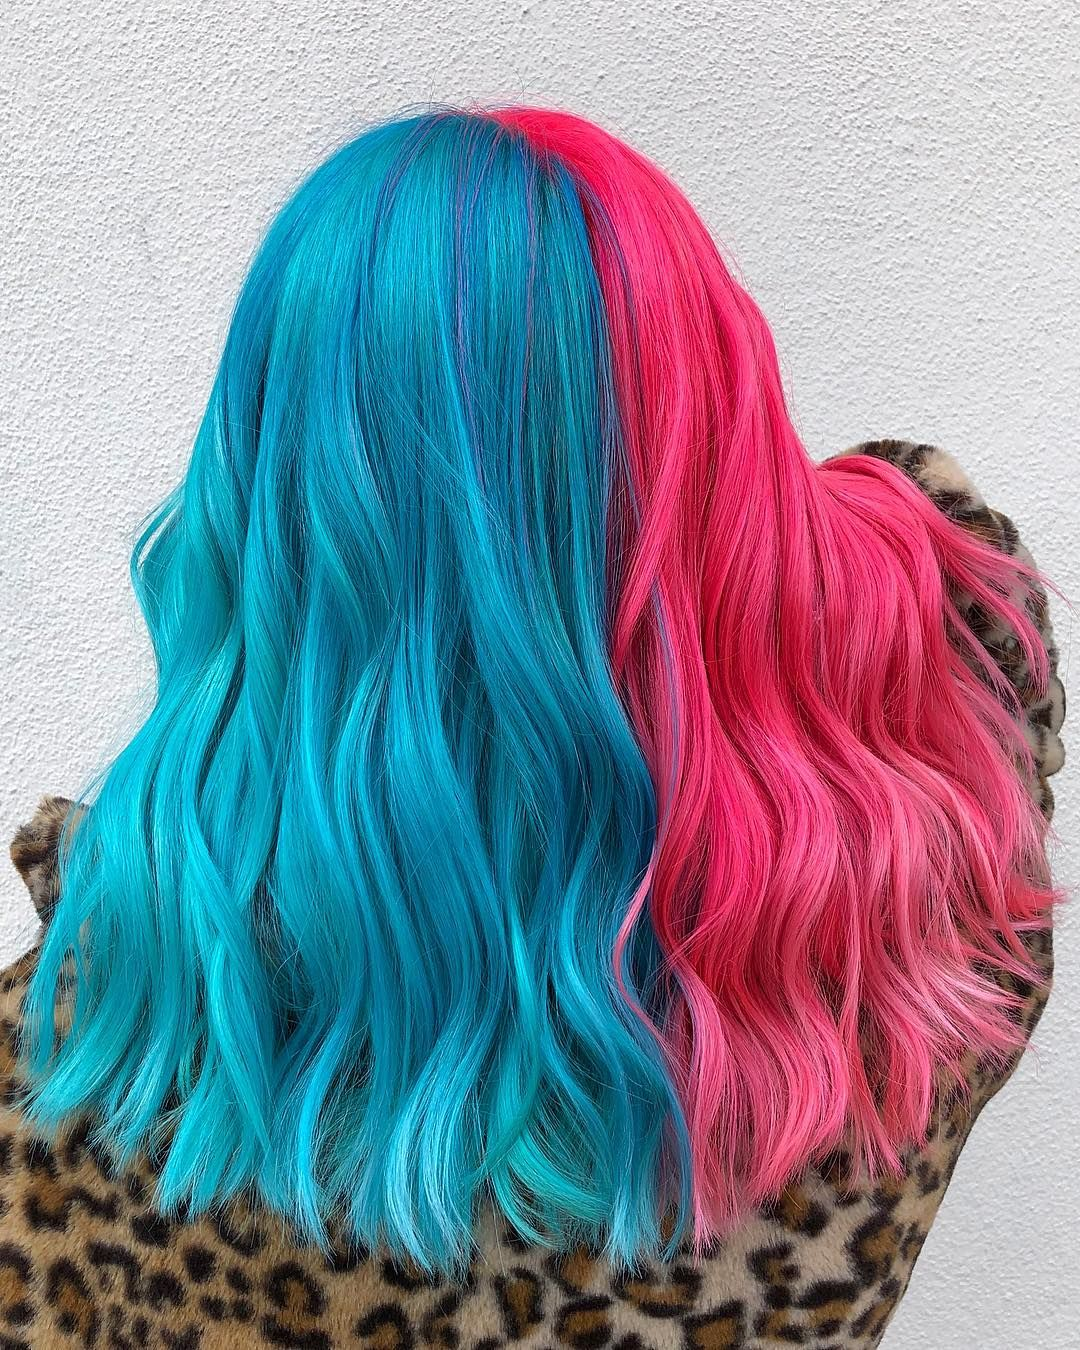 Bambi Balayage Color On Instagram Blue Raspberry Bubblegum Smugbitch Used Pulpriot Neon Elec Two Color Hair Blue And Pink Hair Split Dyed Hair